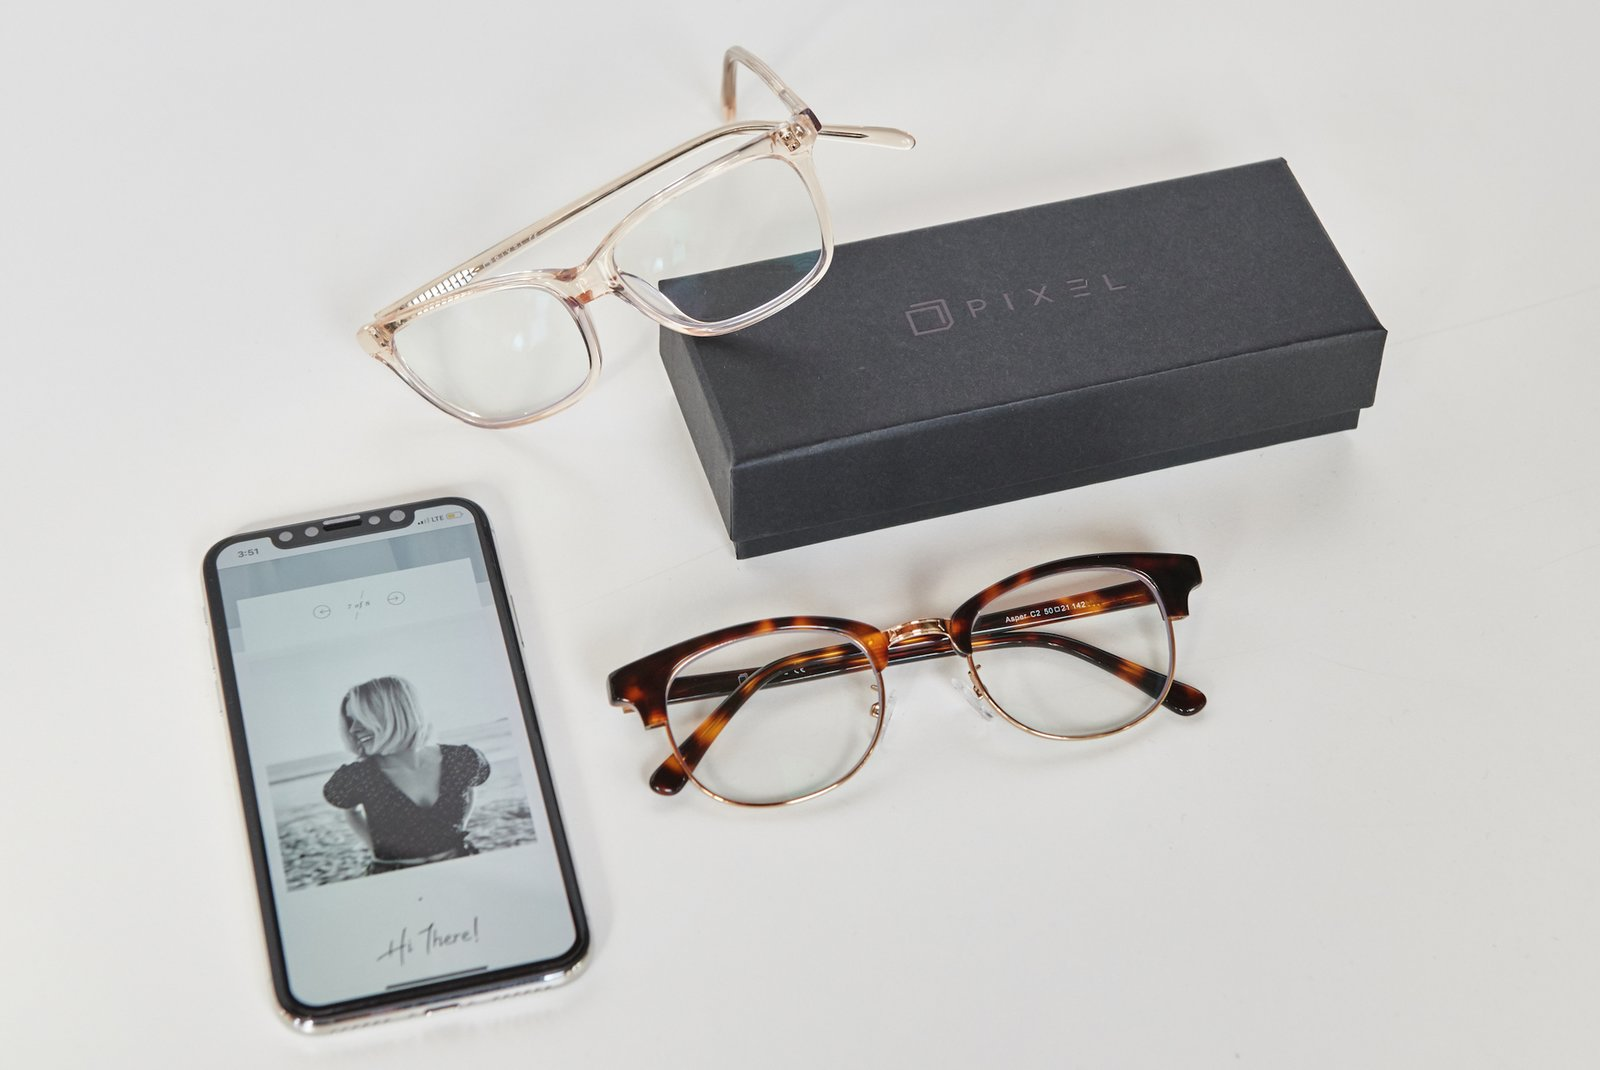 Thanks to the use of cutting-edge lens technology, these glasses have been designed to filter out blue light that is emitted by digital devices.